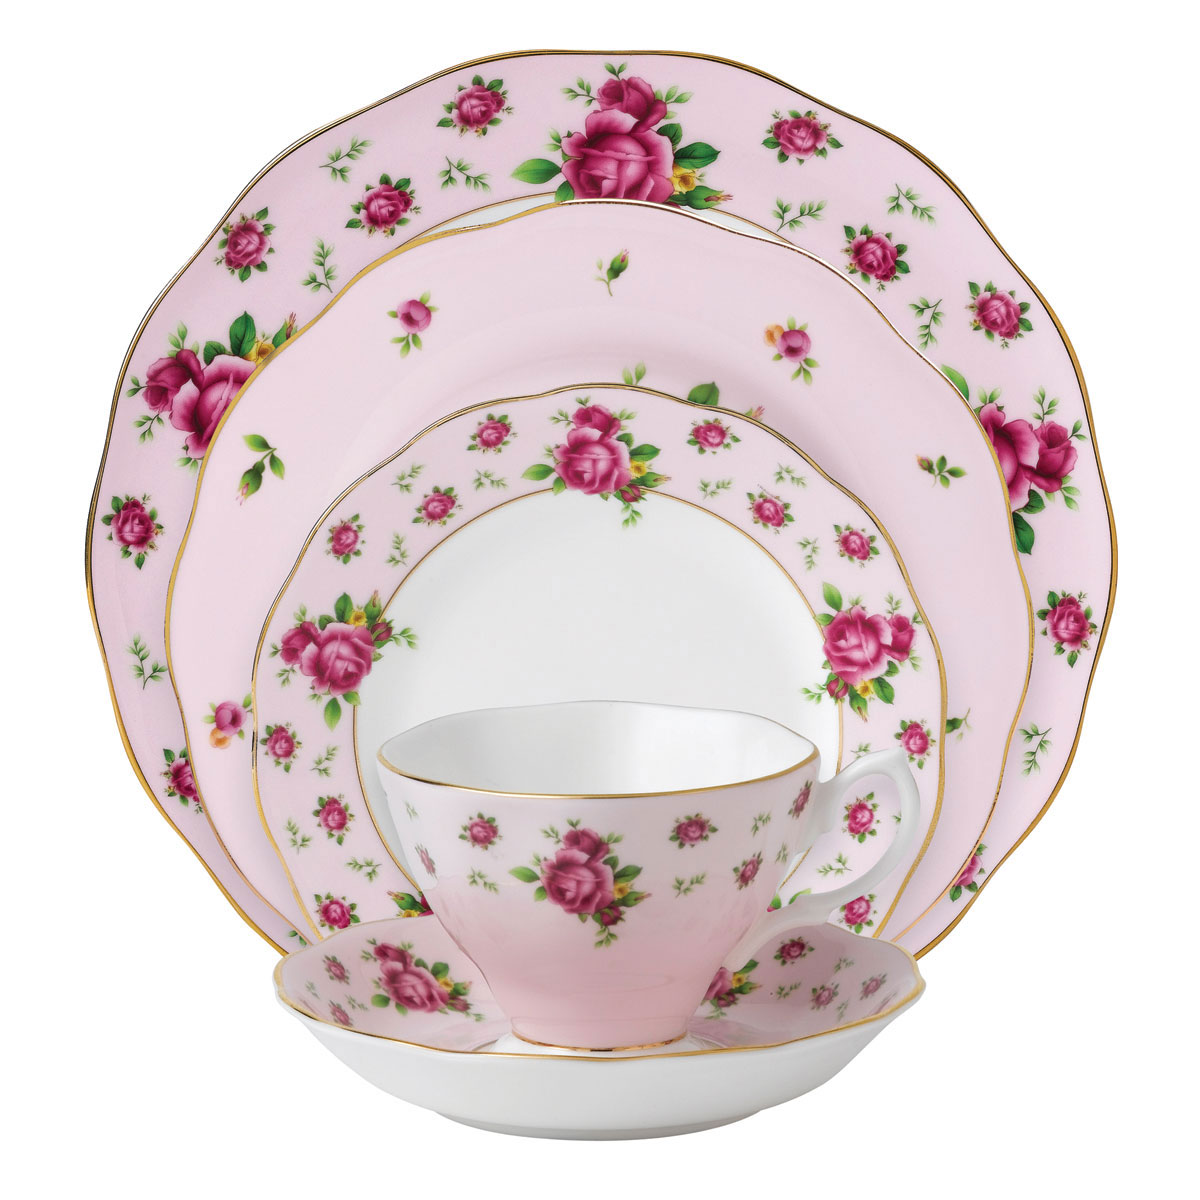 Royal Albert New Country Roses Pink 5-Piece Place Setting